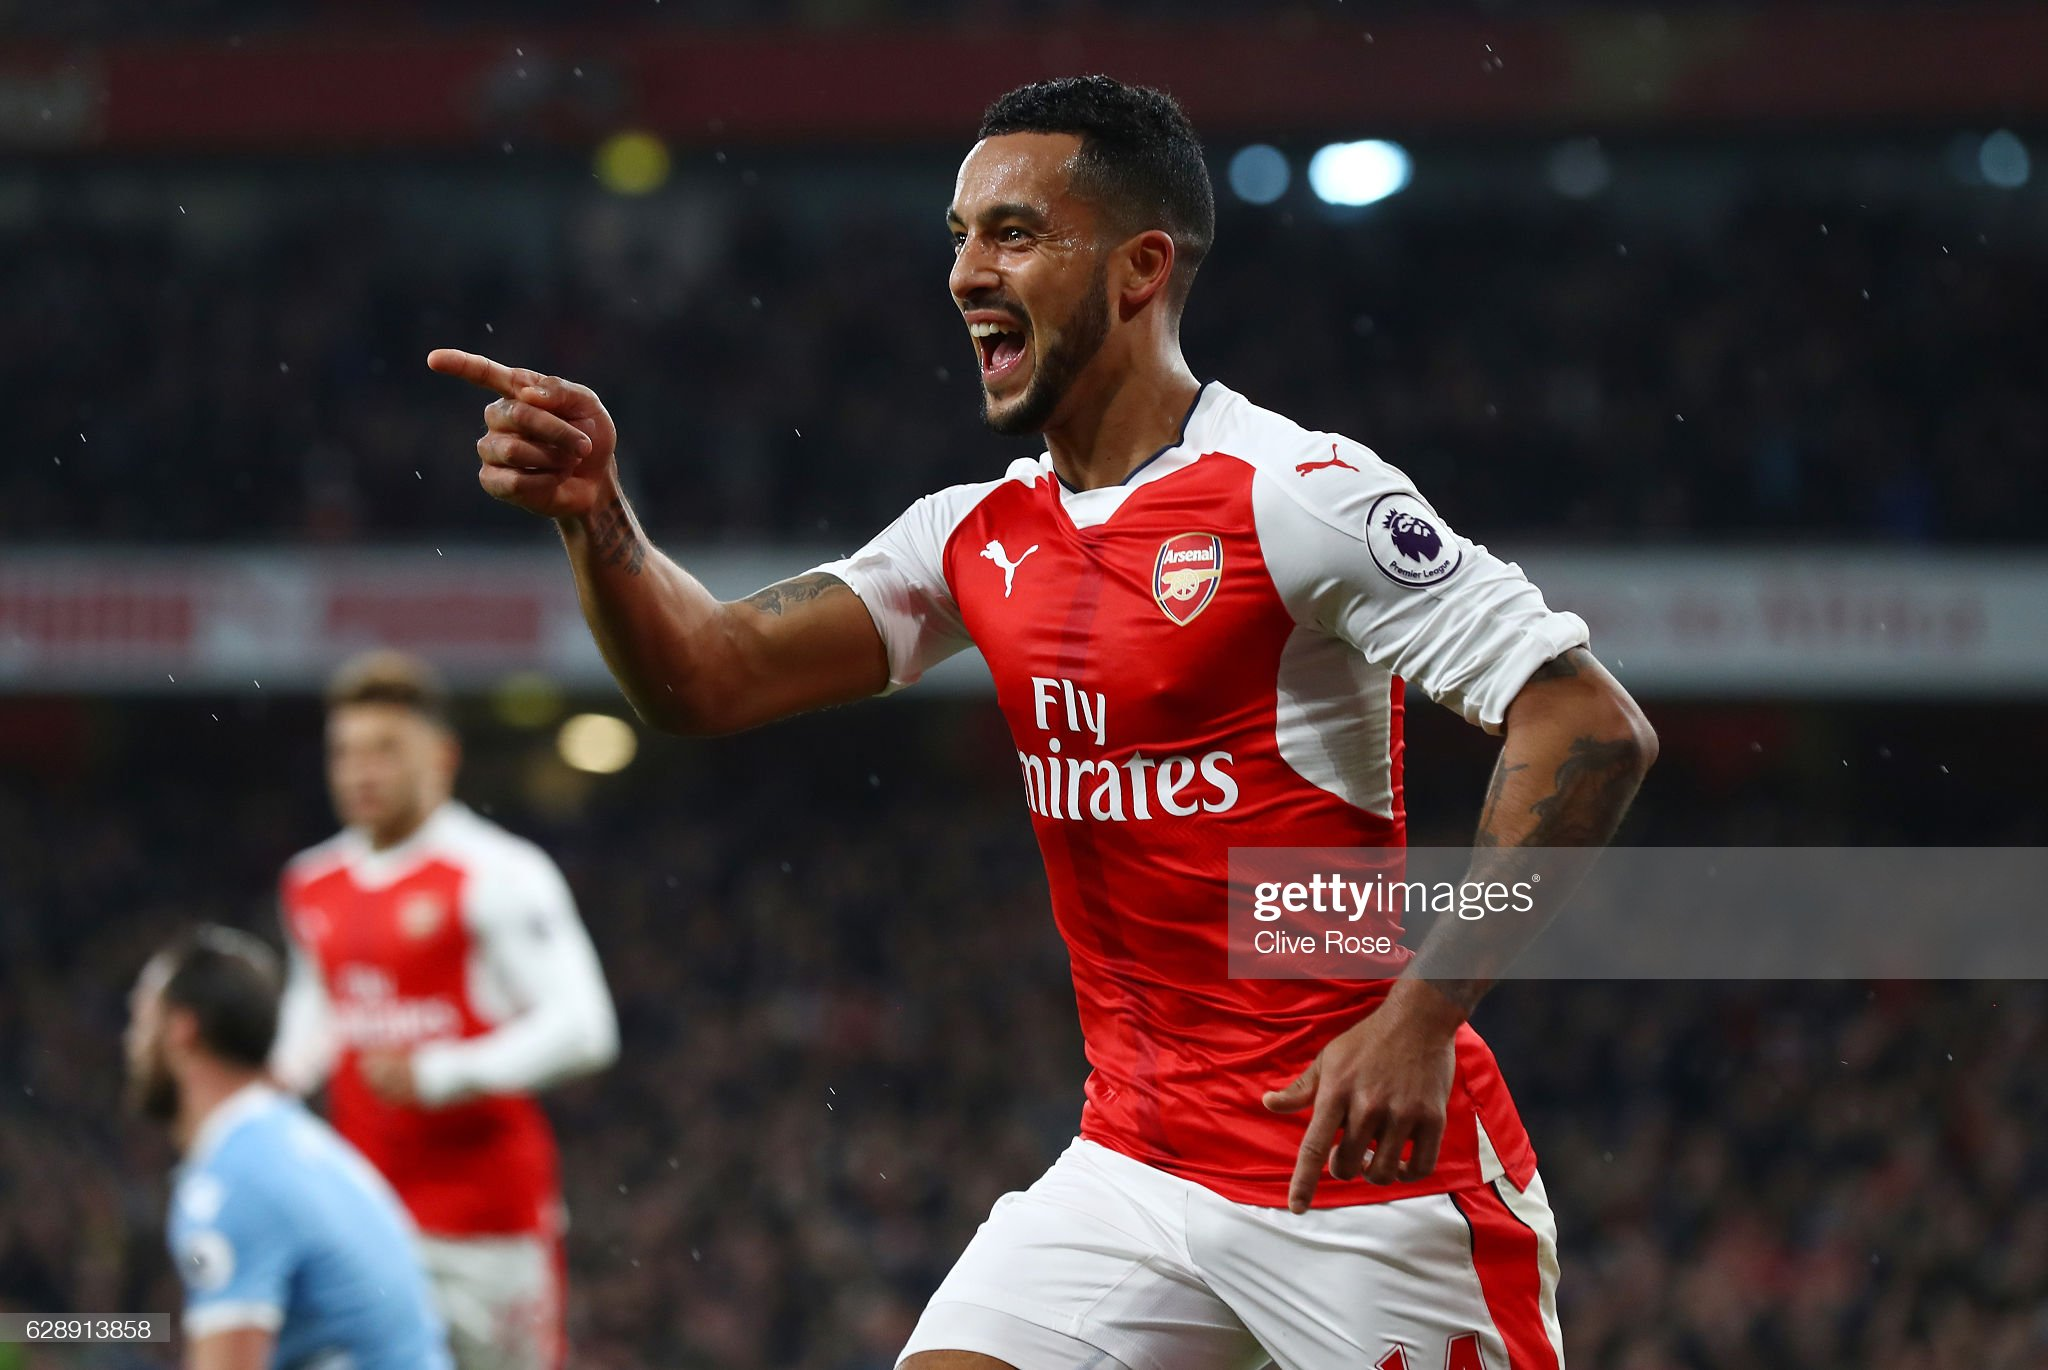 https://media.gettyimages.com/photos/theo-walcott-of-arsenal-celebrates-scoring-his-sides-first-goal-the-picture-id628913858?s=2048x2048